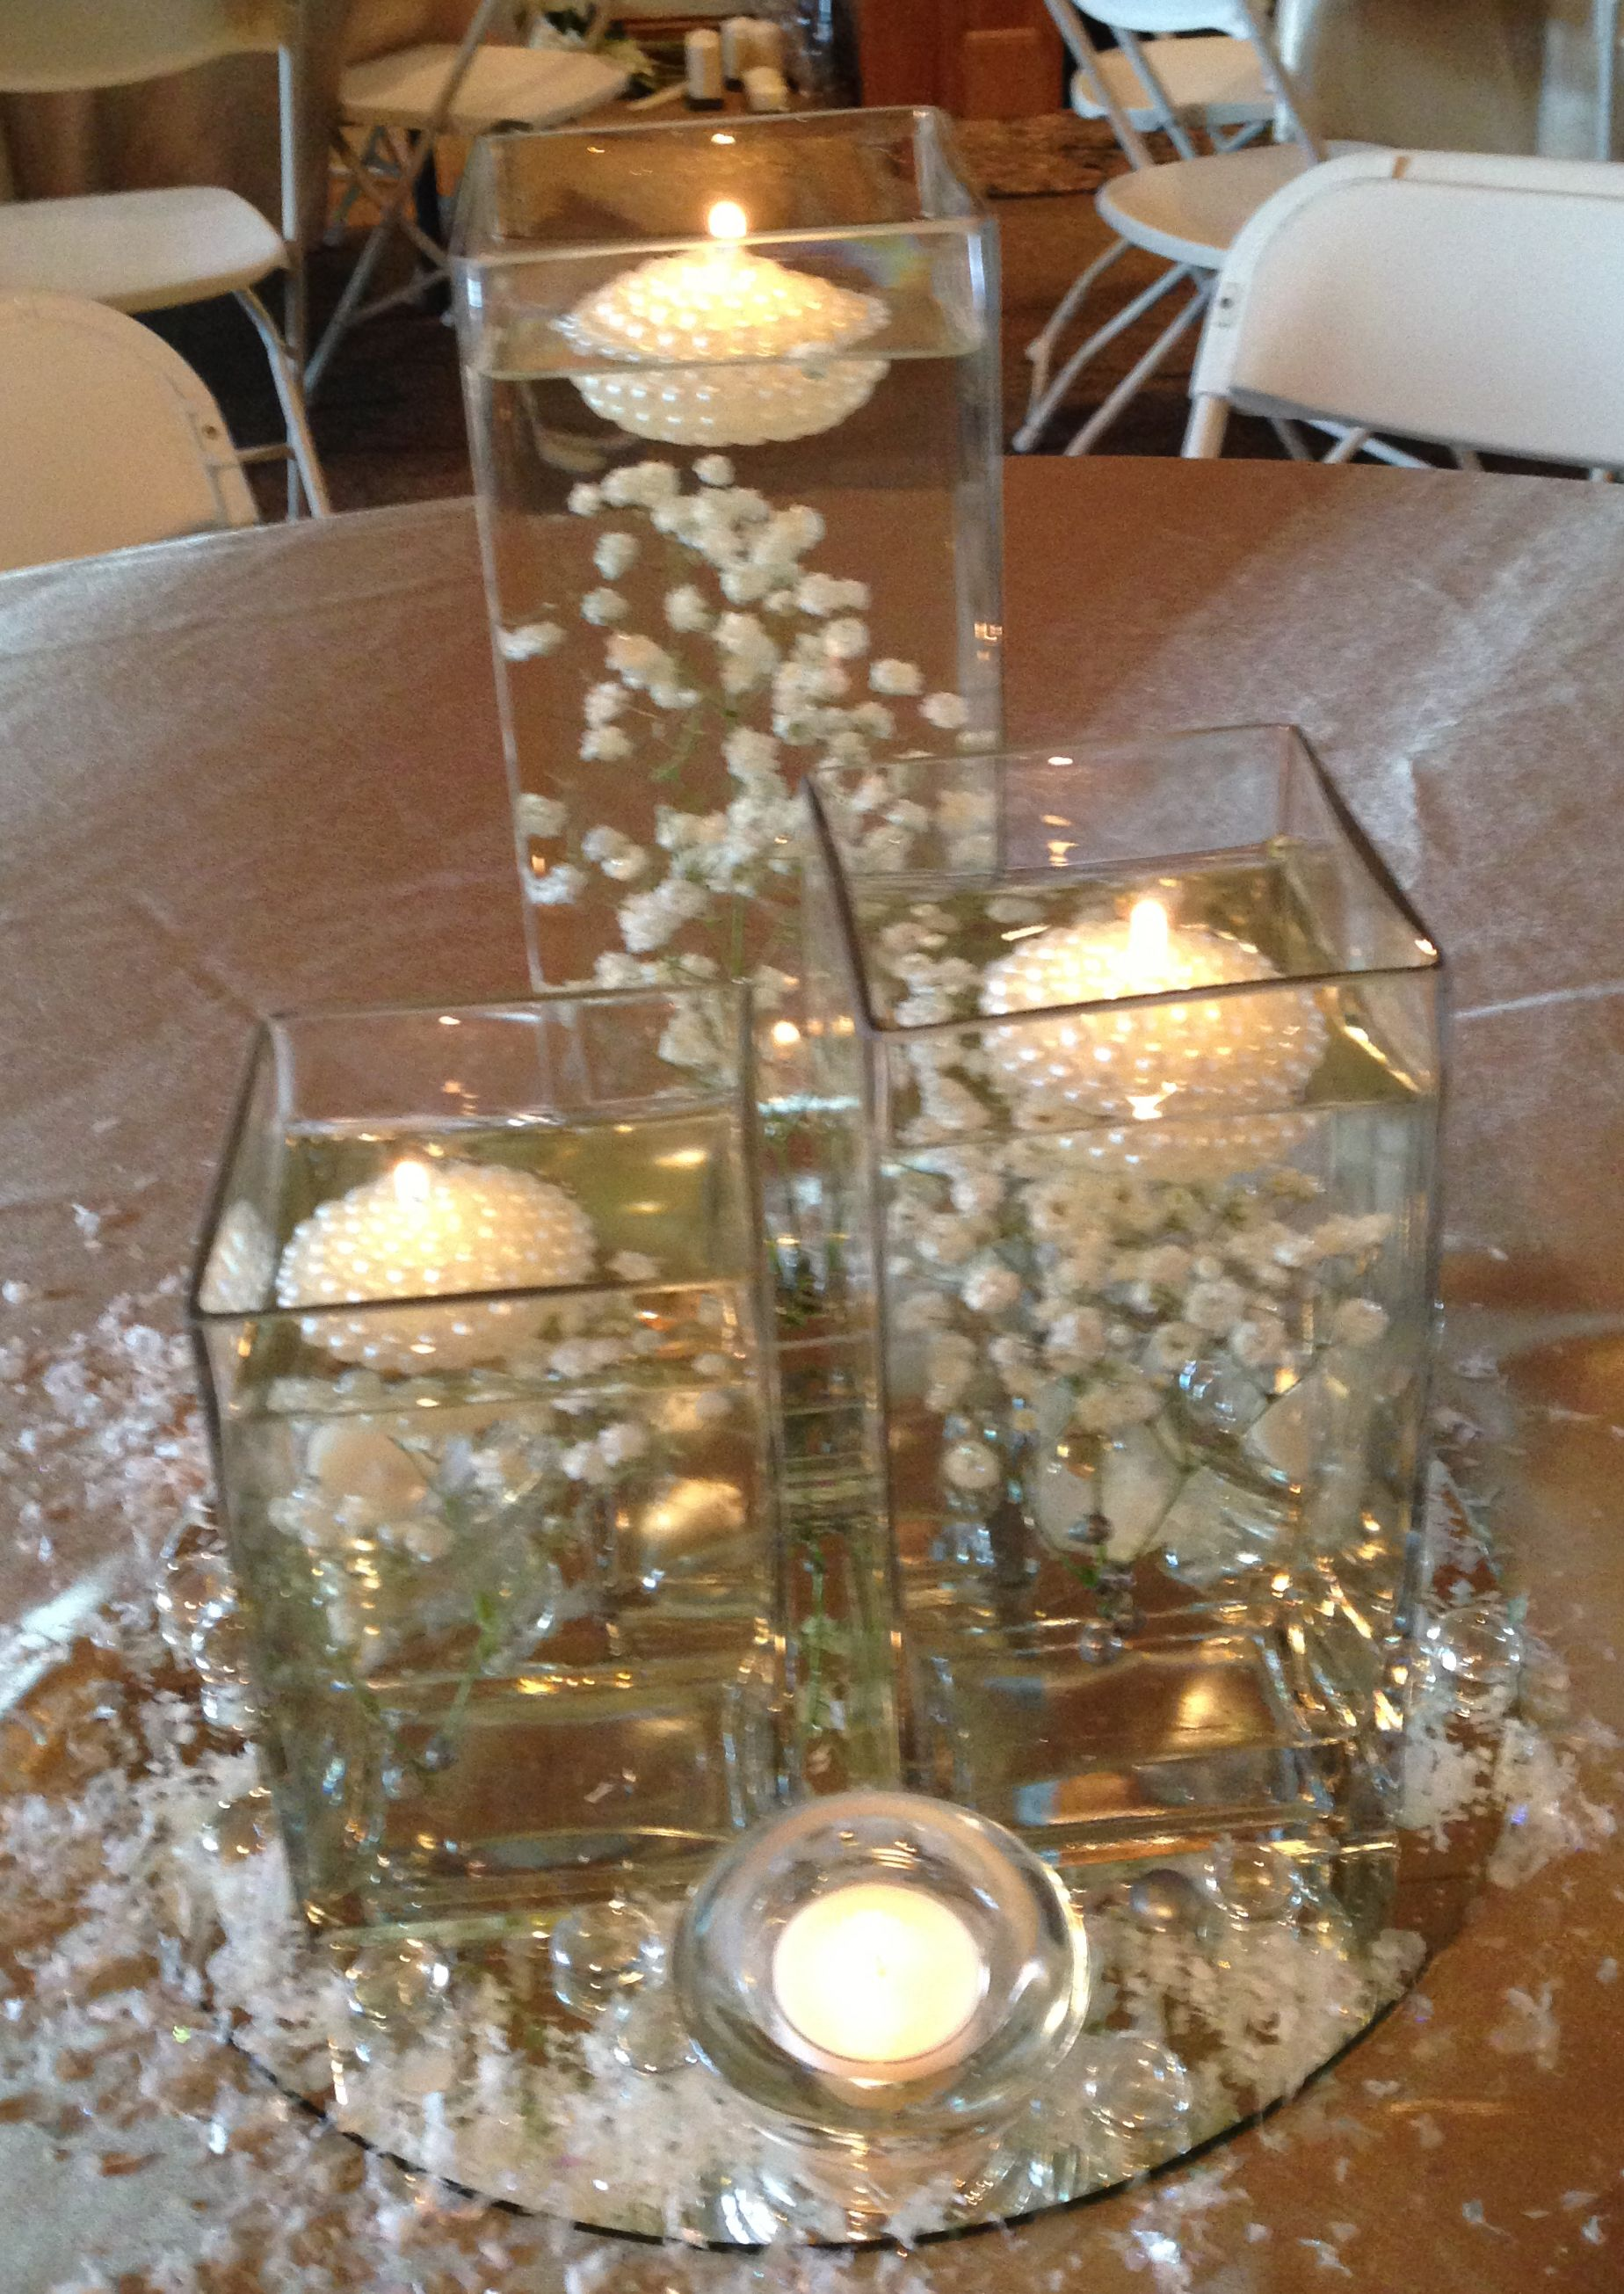 Baby S Breath Submerged In Square Vases With Floating Candles Created For Winter Anniversary Party Www